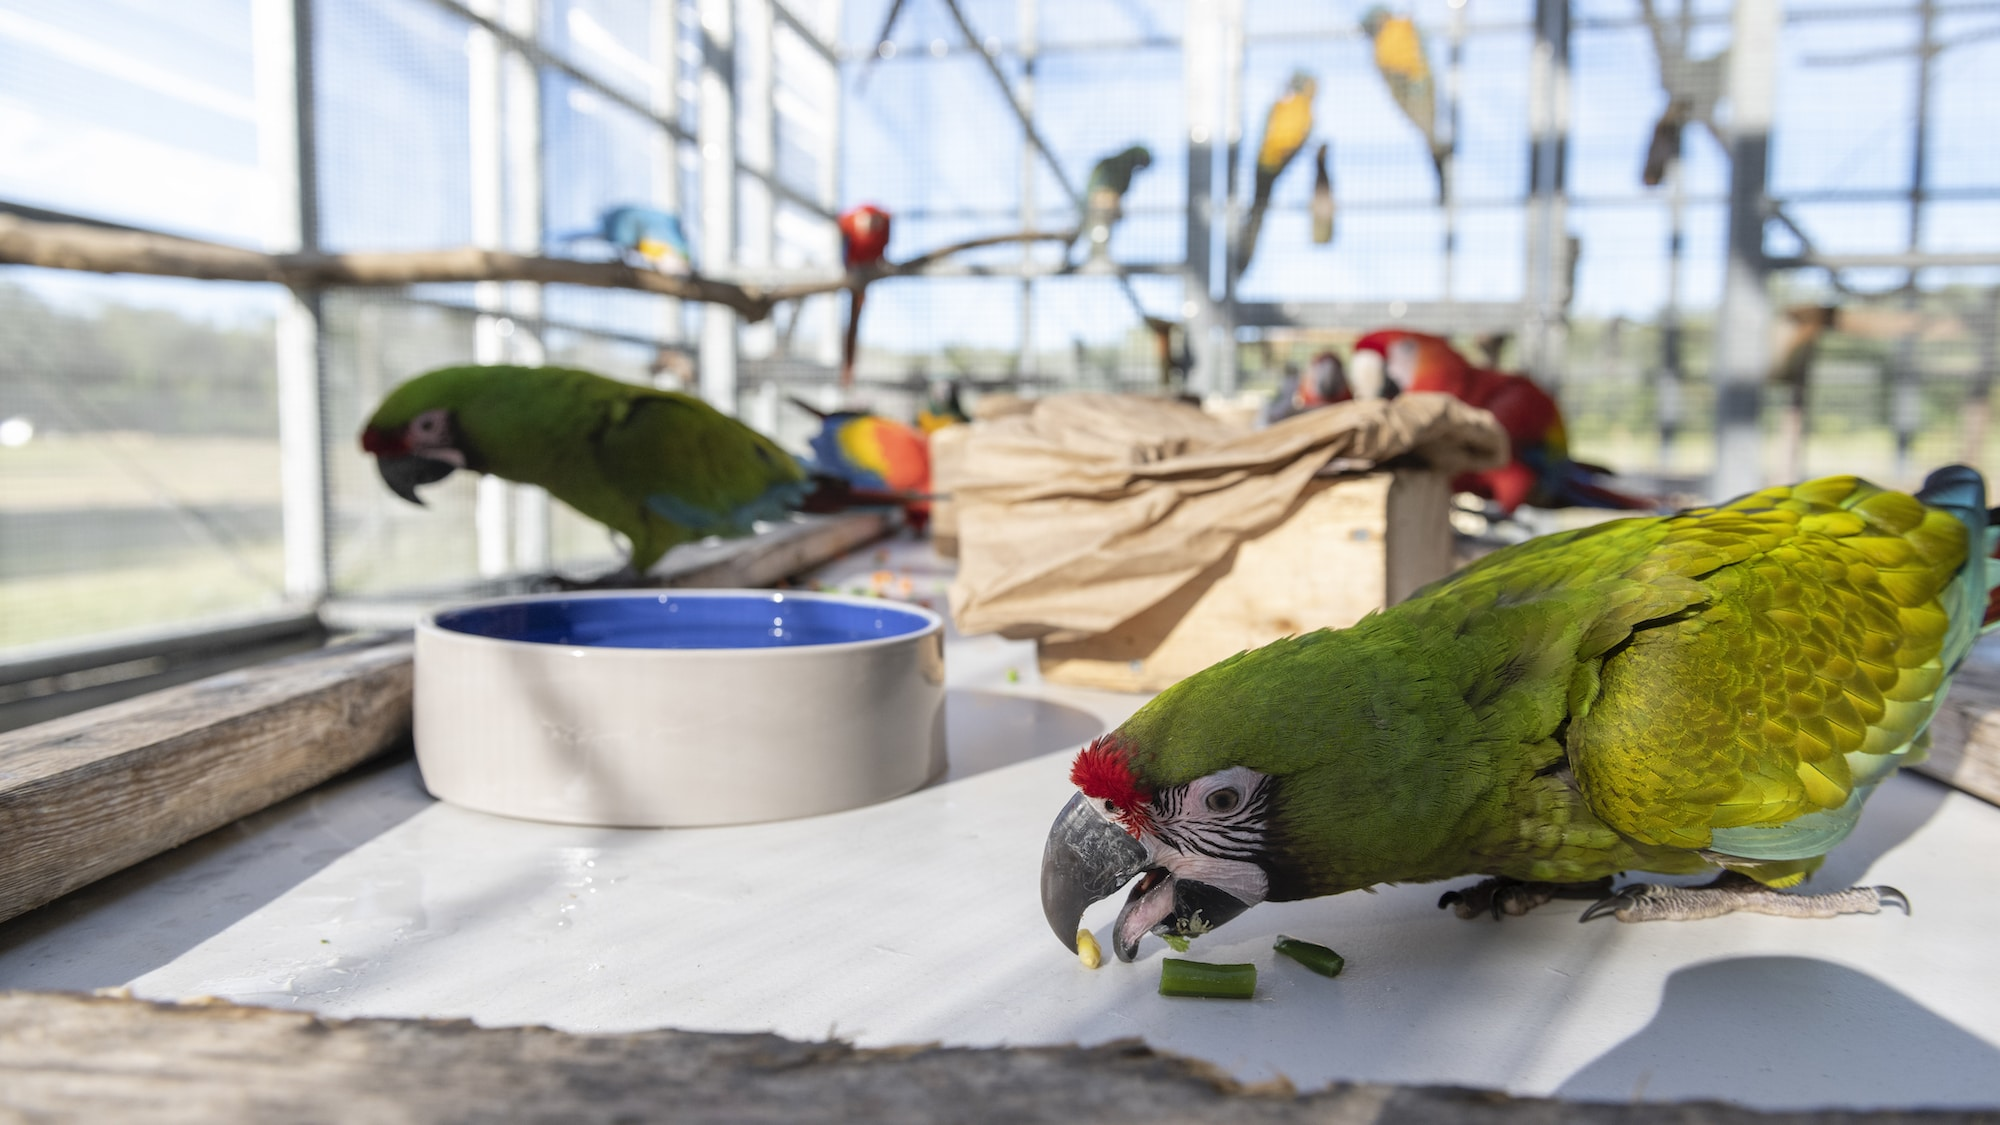 Willow a Military Macaw eating with unknown Macaws in background. (Charlene Guilliams/Disney)